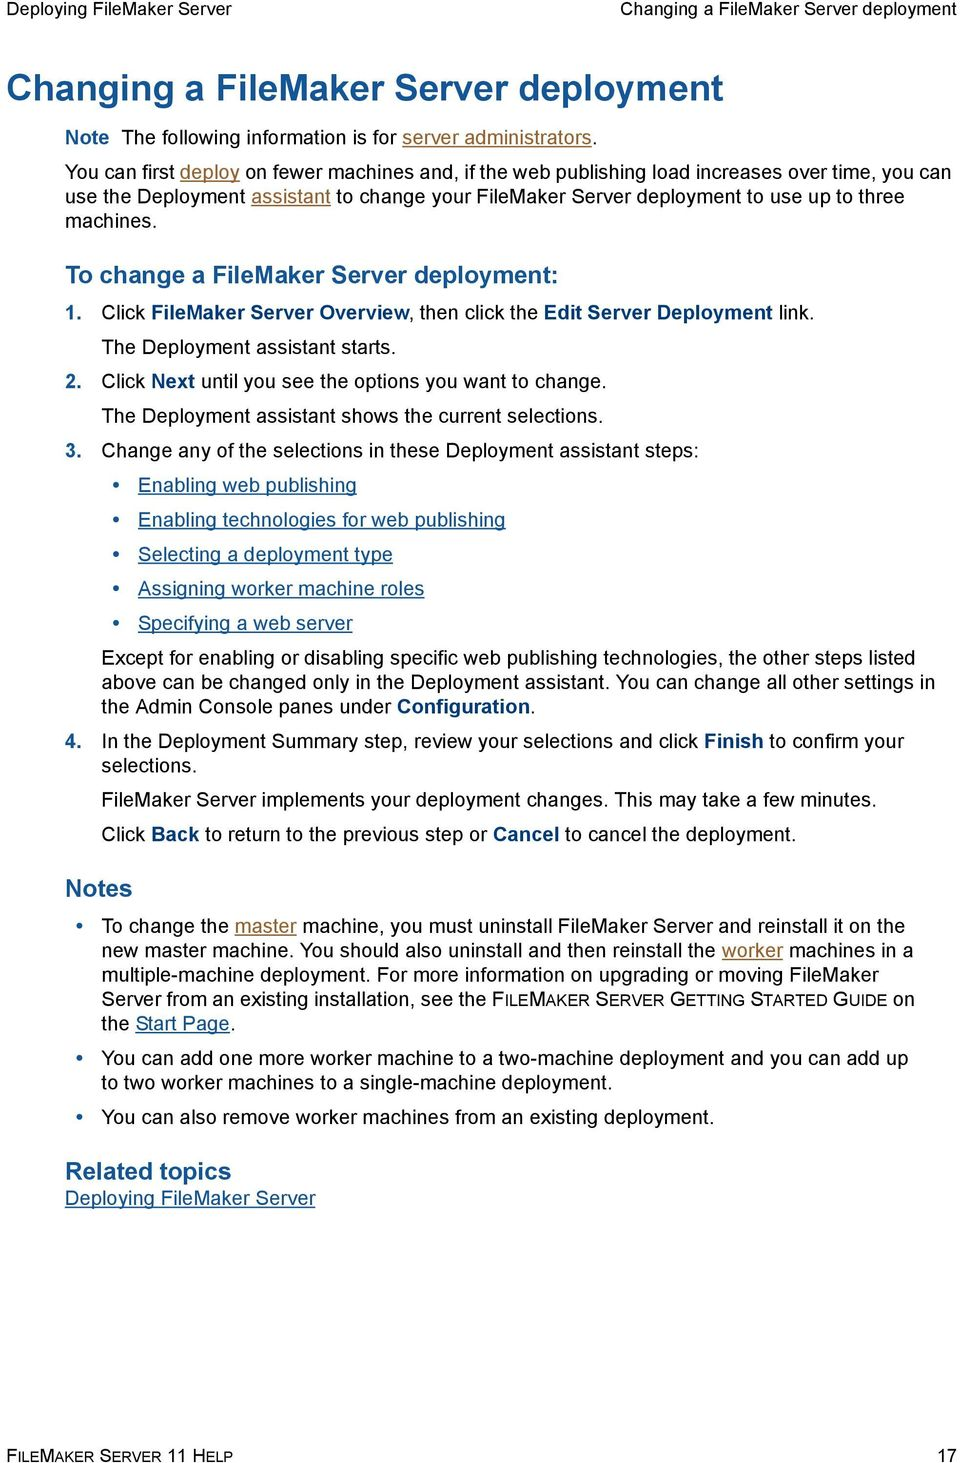 To change a FileMaker Server deployment: 1. Click FileMaker Server Overview, then click the Edit Server Deployment link. The Deployment assistant starts. 2.